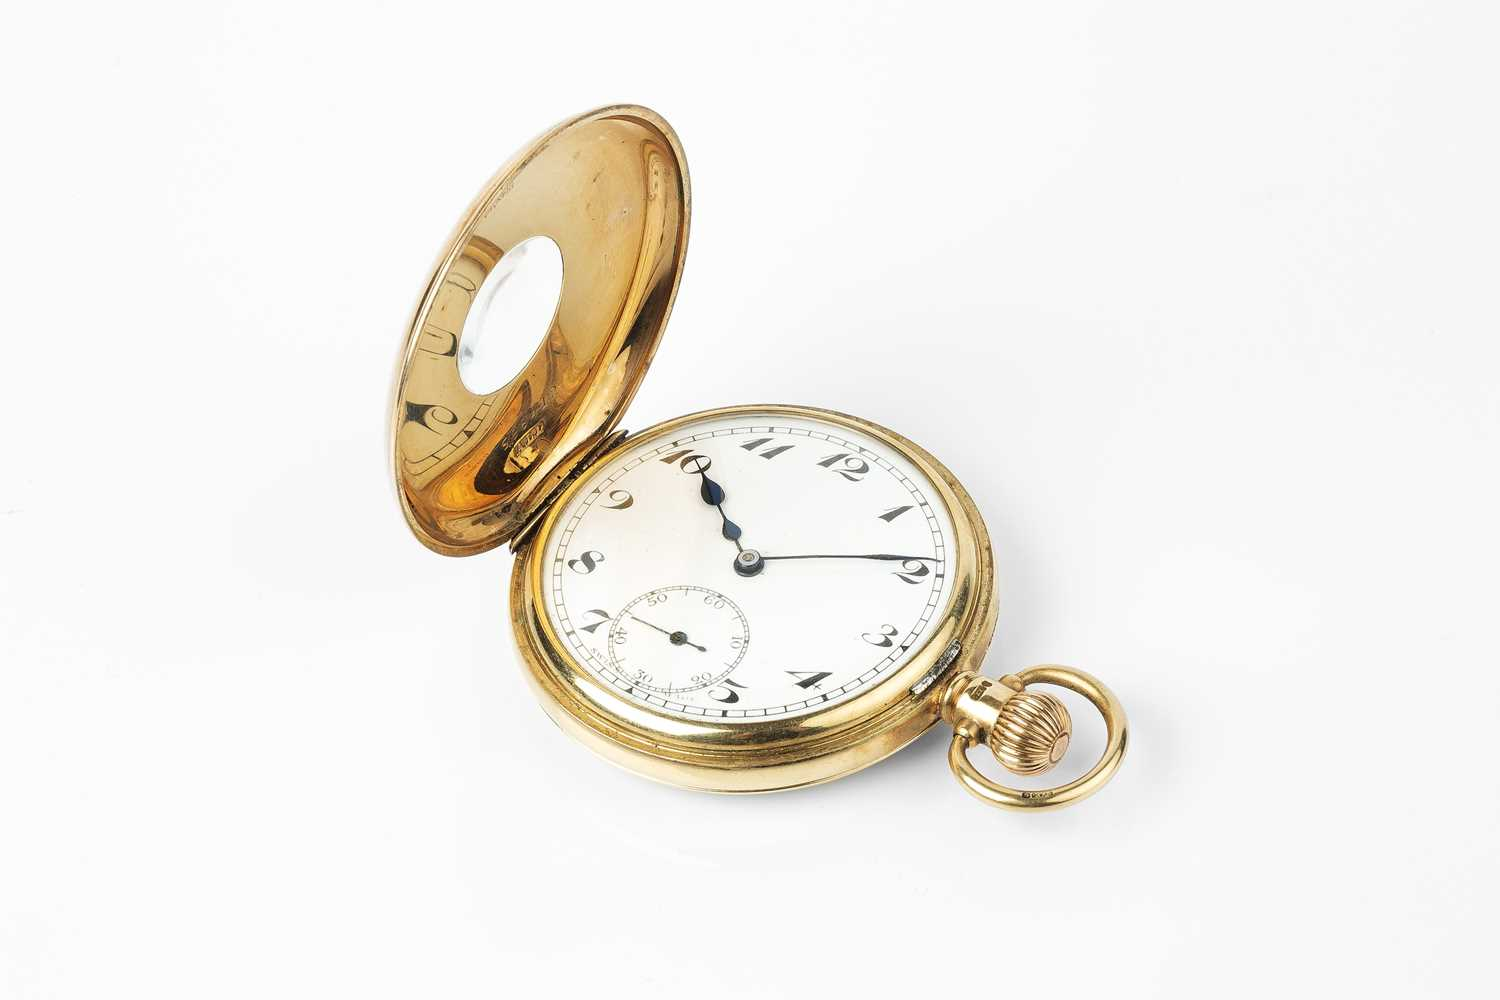 A 9ct gold half hunter pocket watch, the white dial with stylised Arabic numerals and subsidiary